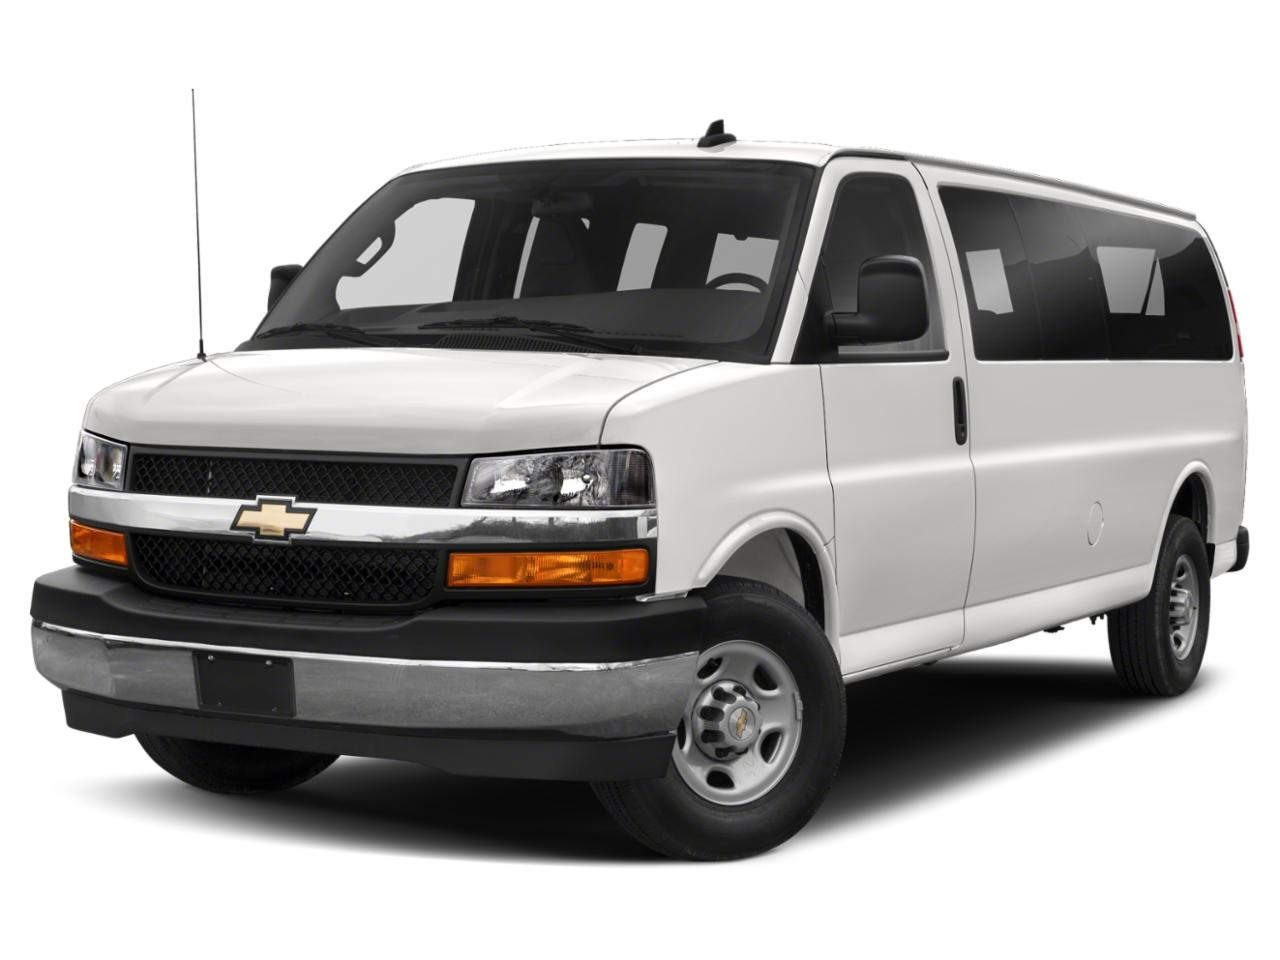 2021 Chevrolet Express Passenger Vehicle Photo in Wakefield, MA 01880